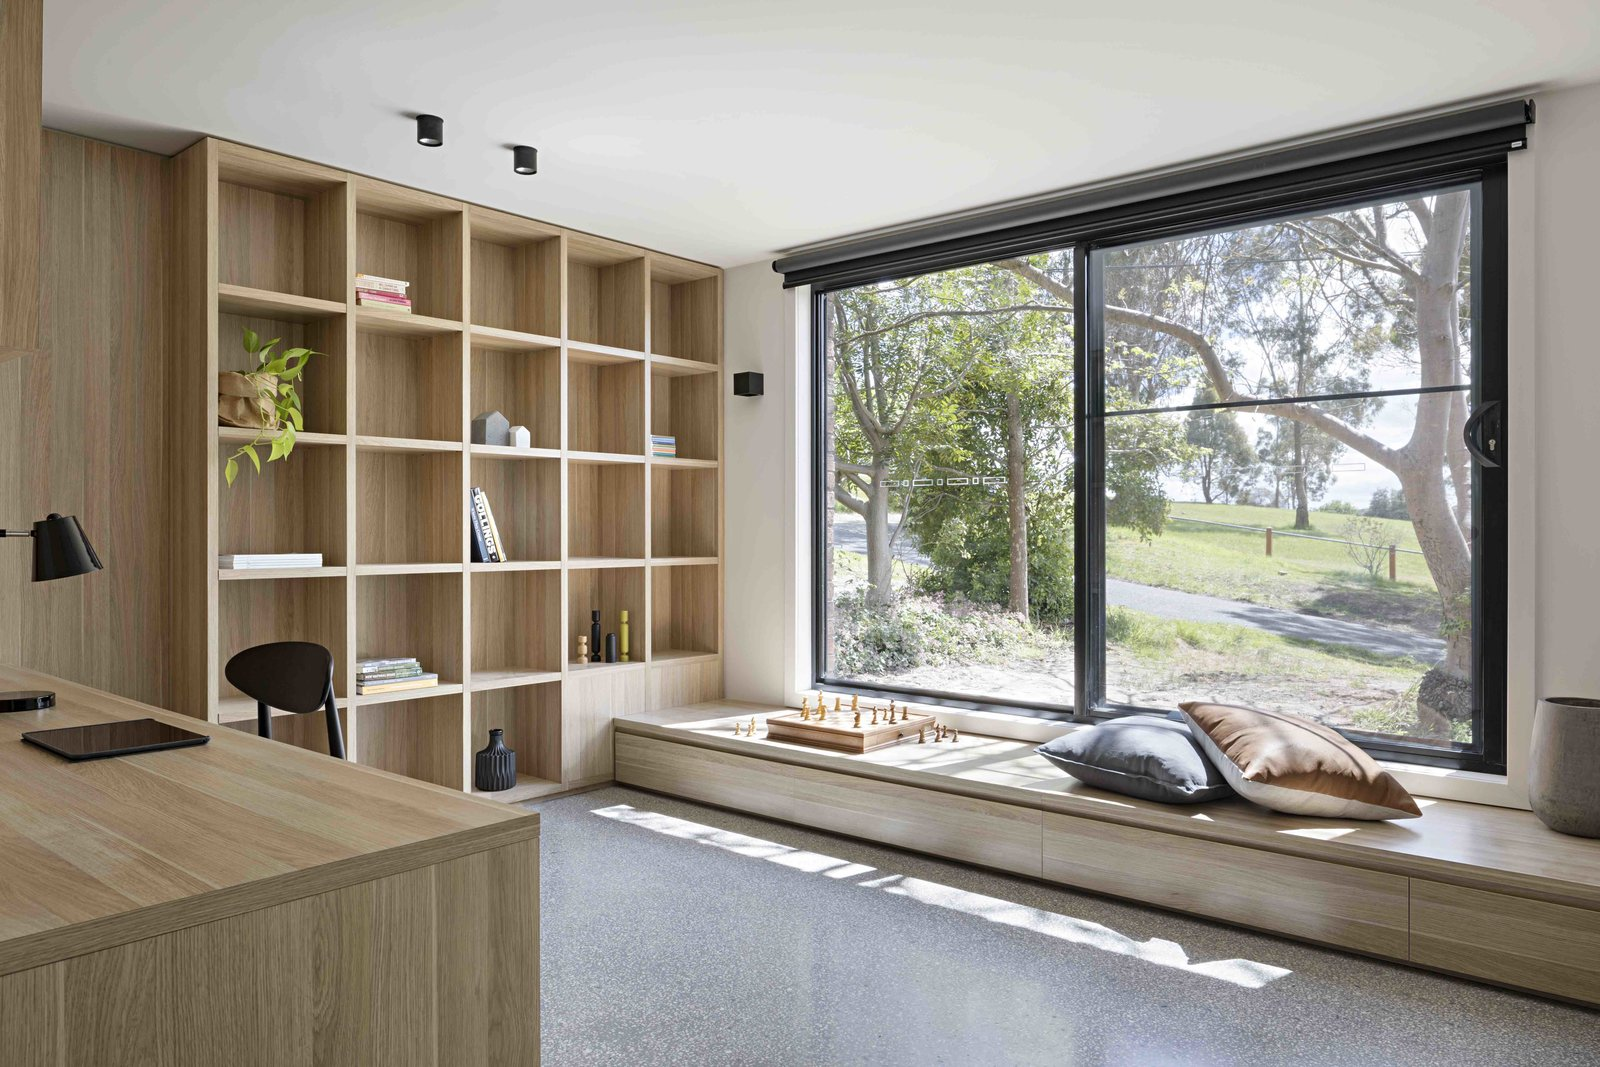 Tagged: Office, Library, Study, Chair, Storage, Shelves, Desk, Bookcase, and Lamps. A Remodel Turns a Dark and Choppy House in Melbourne Into a Bright, Flexible Family Home - Photo 8 of 17